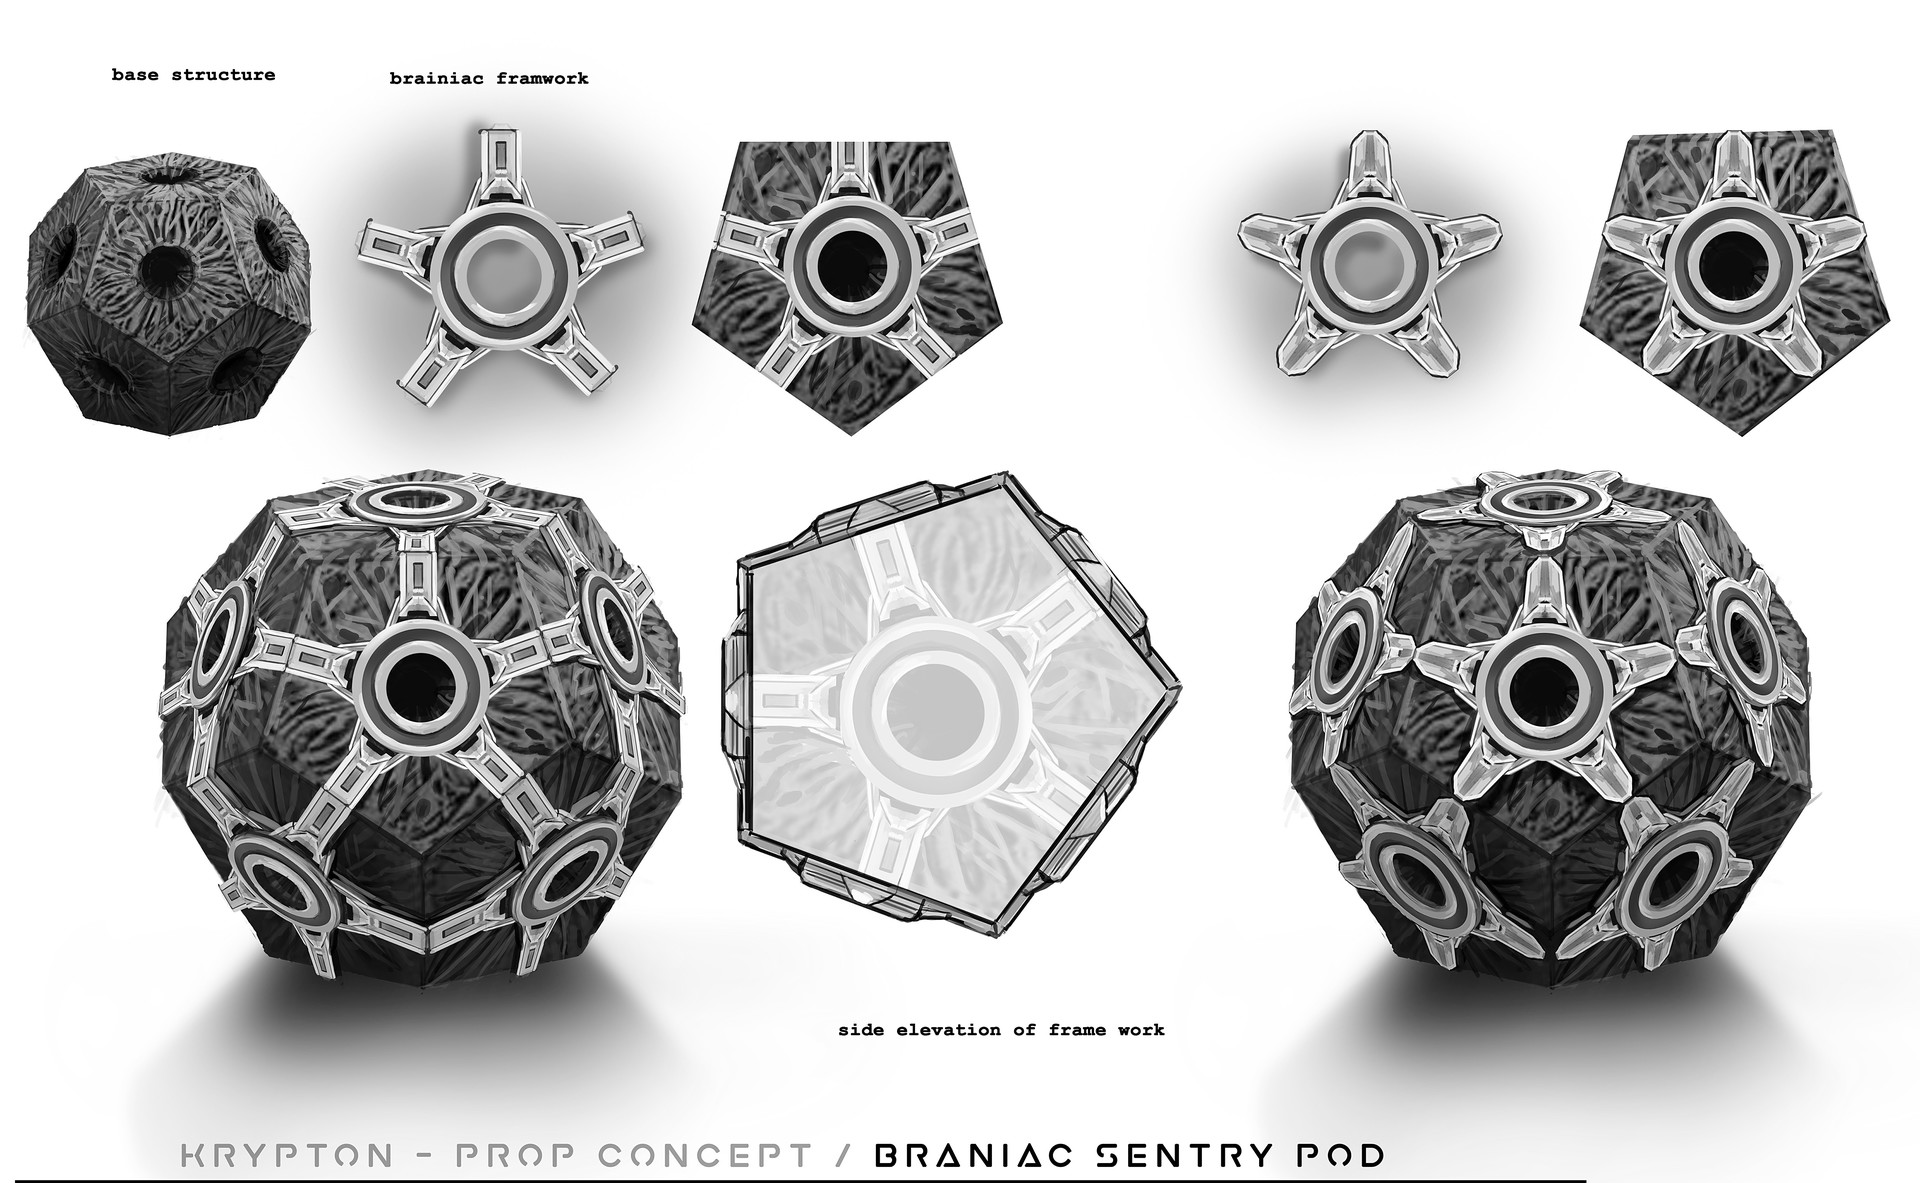 Nothof ferenc braniac dedocahedron sentry device page 04